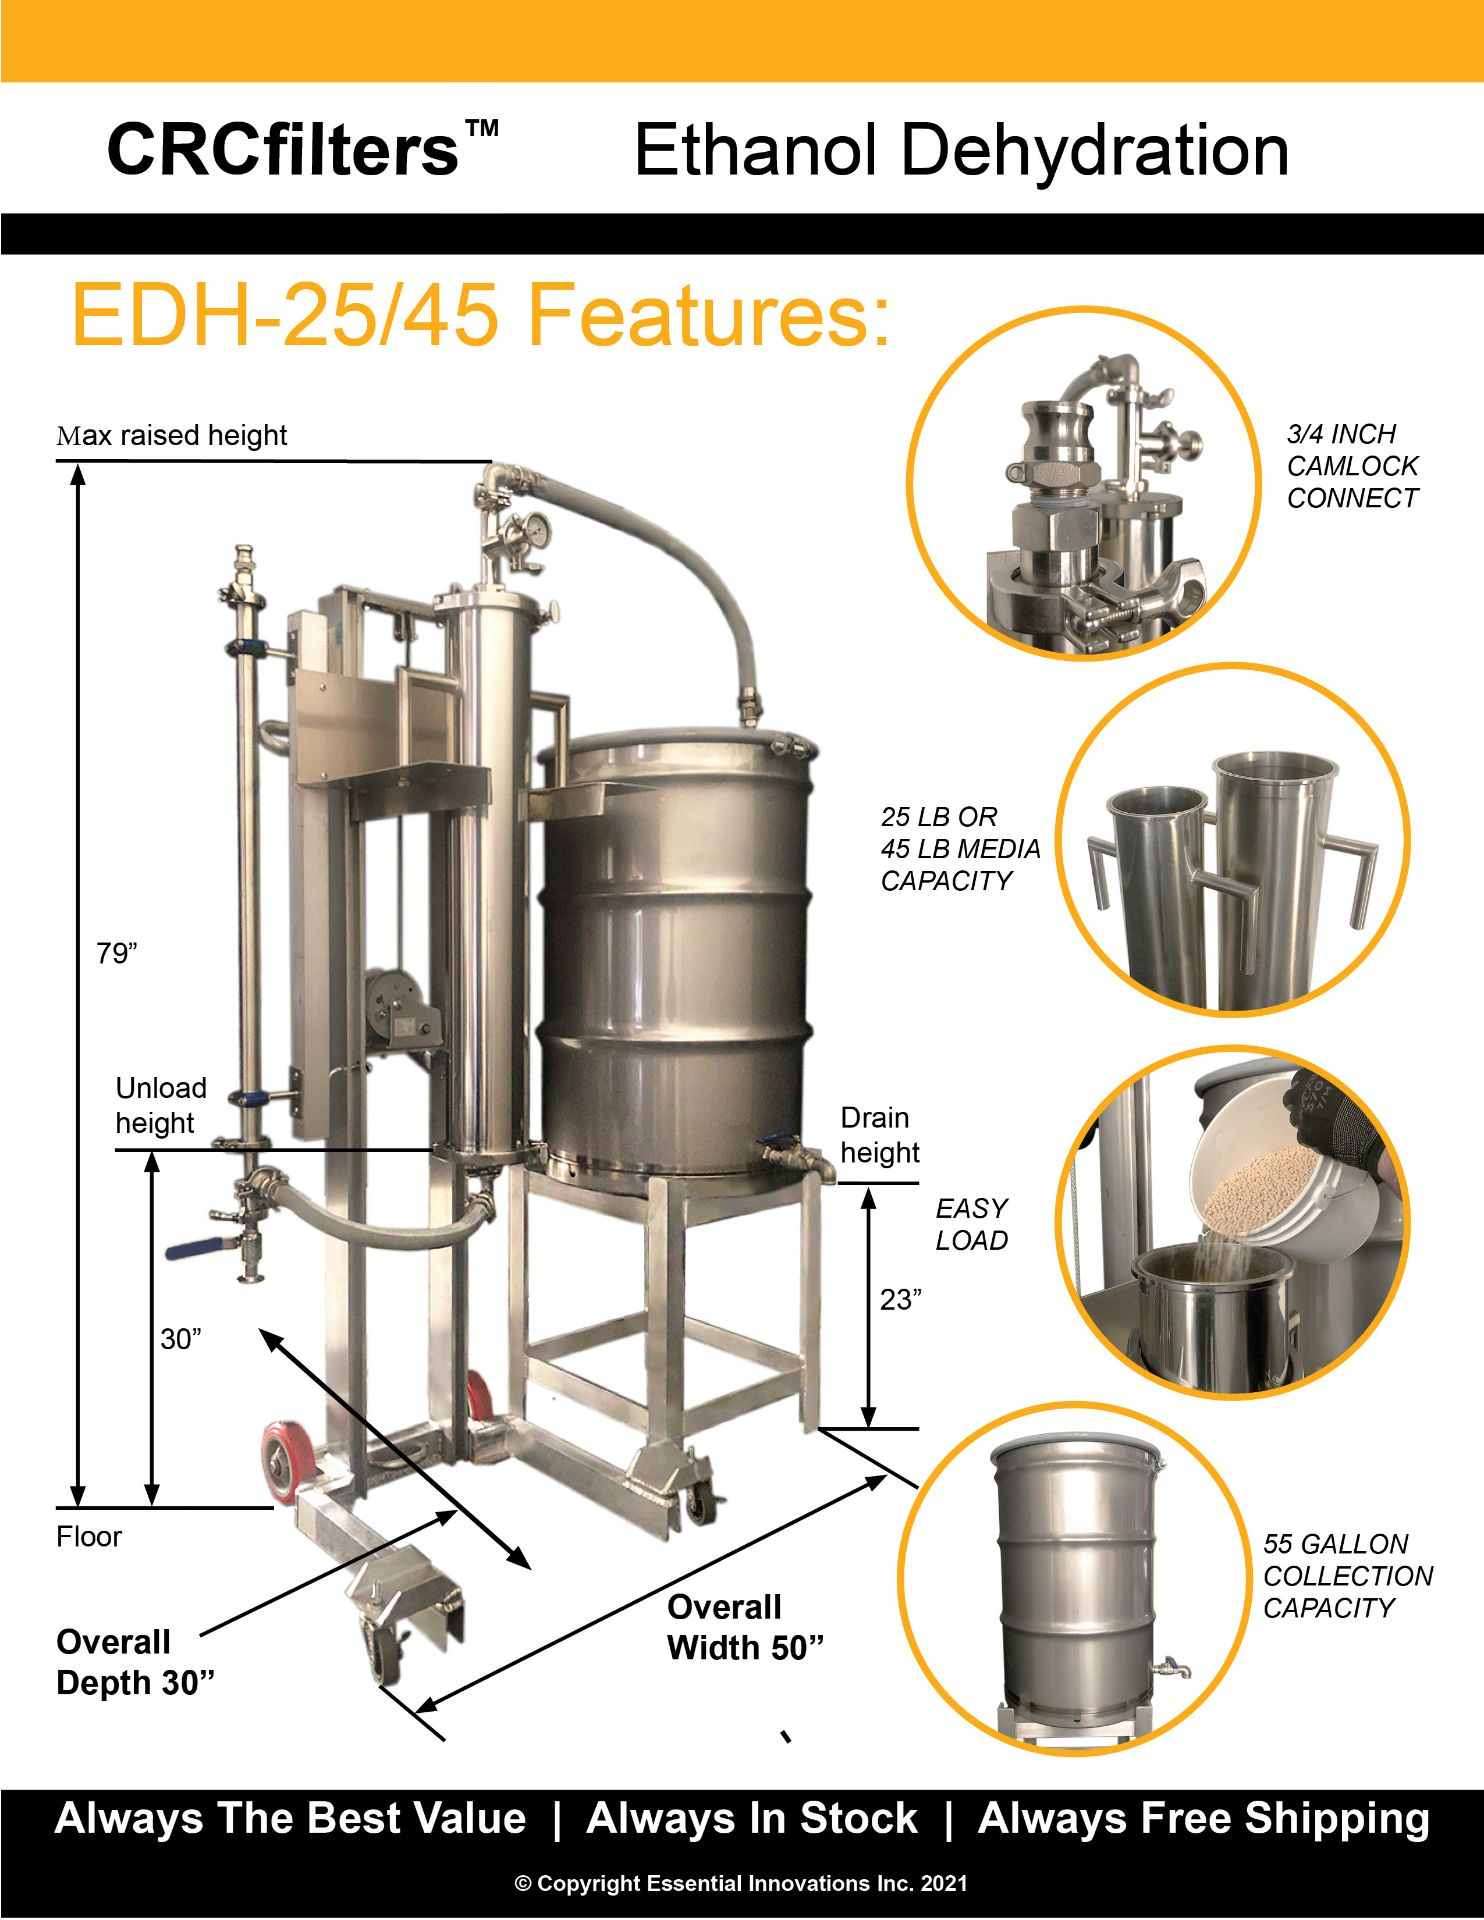 Used/Refurbished-CRCfilters Ethanol Dehydration System EDH-25. 25lb capacity 55 gal collection drum. - Image 5 of 7